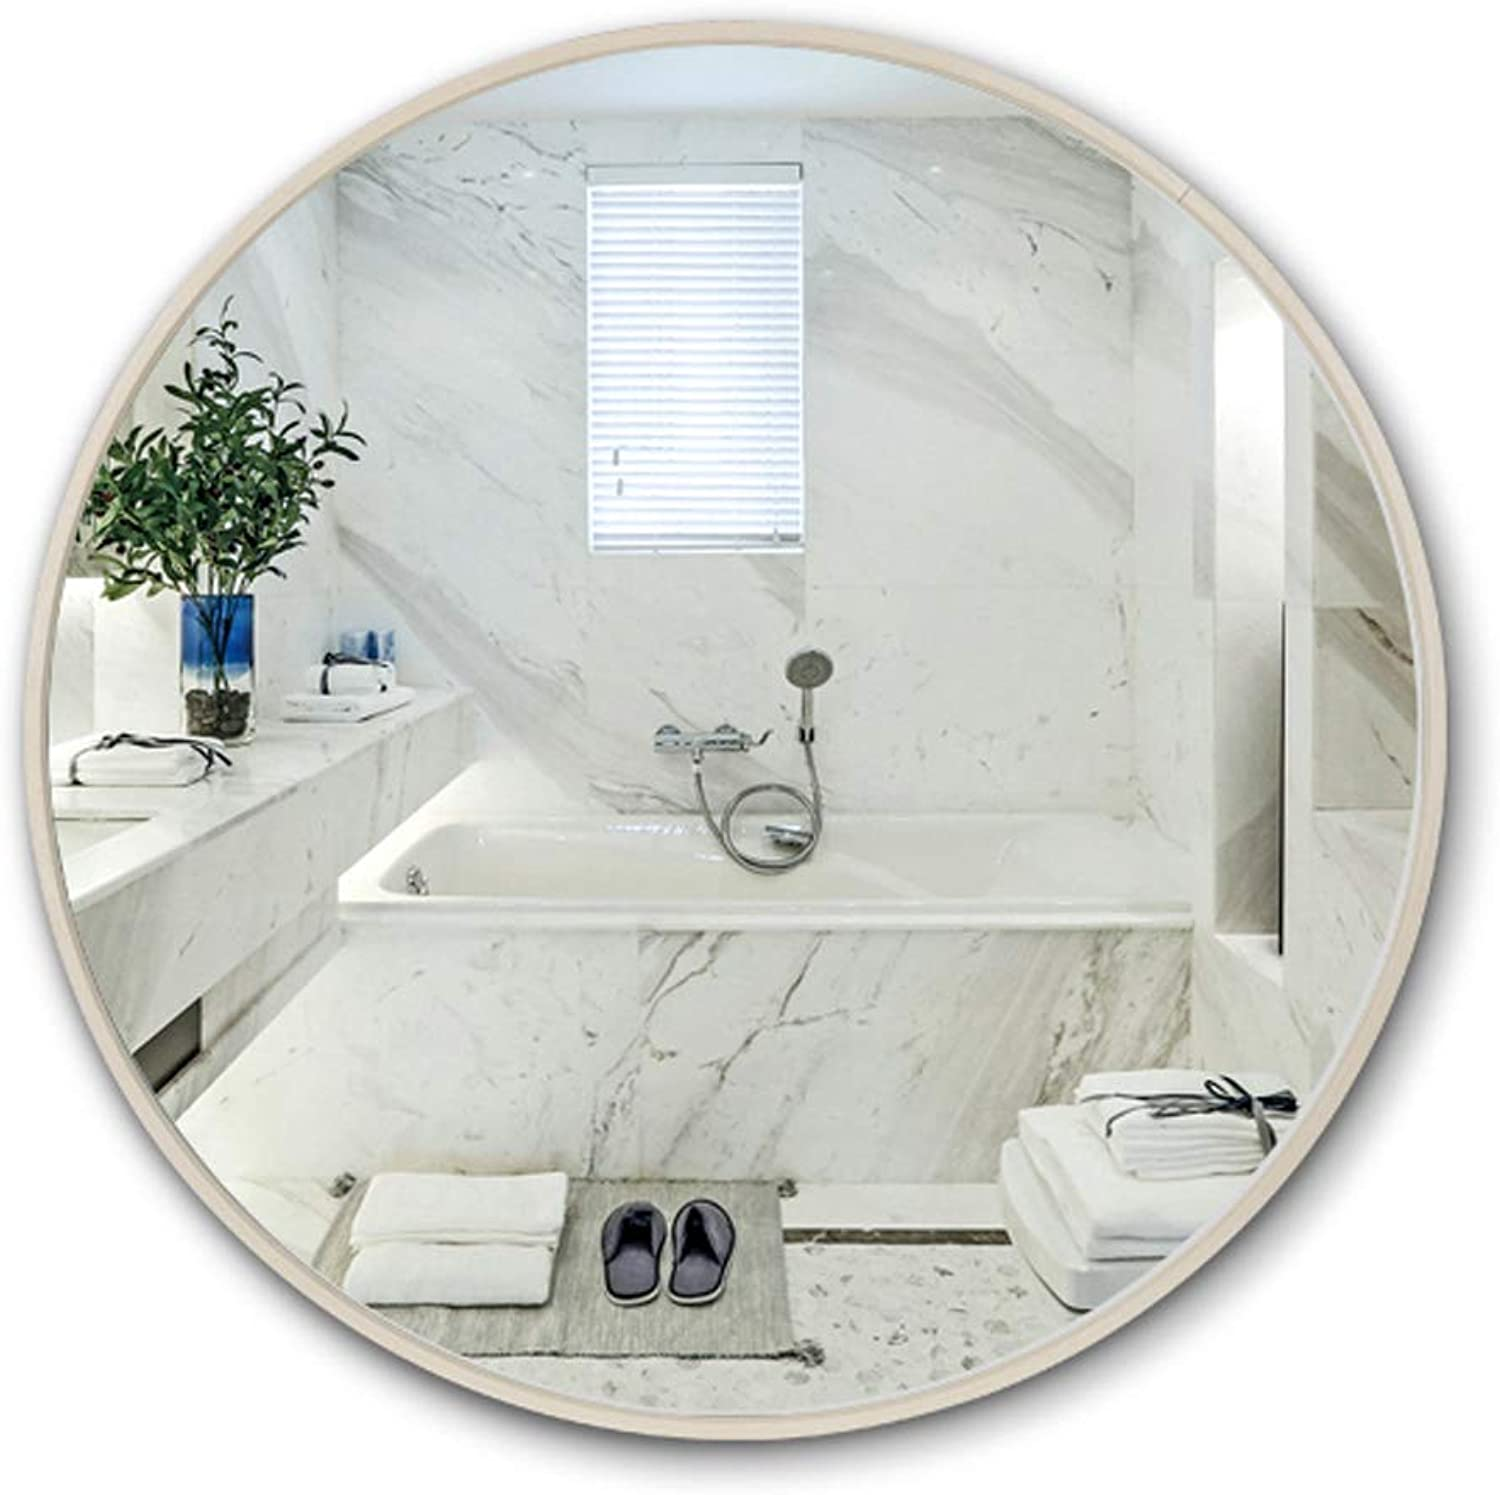 Round Bathroom Mirror Wall-Mounted Large Vanity Makeup Mirrors with Aluminum Alloy Frame, Contemporary Premium Silver Backed Floating Round Glass Panel, Floating Mirrors